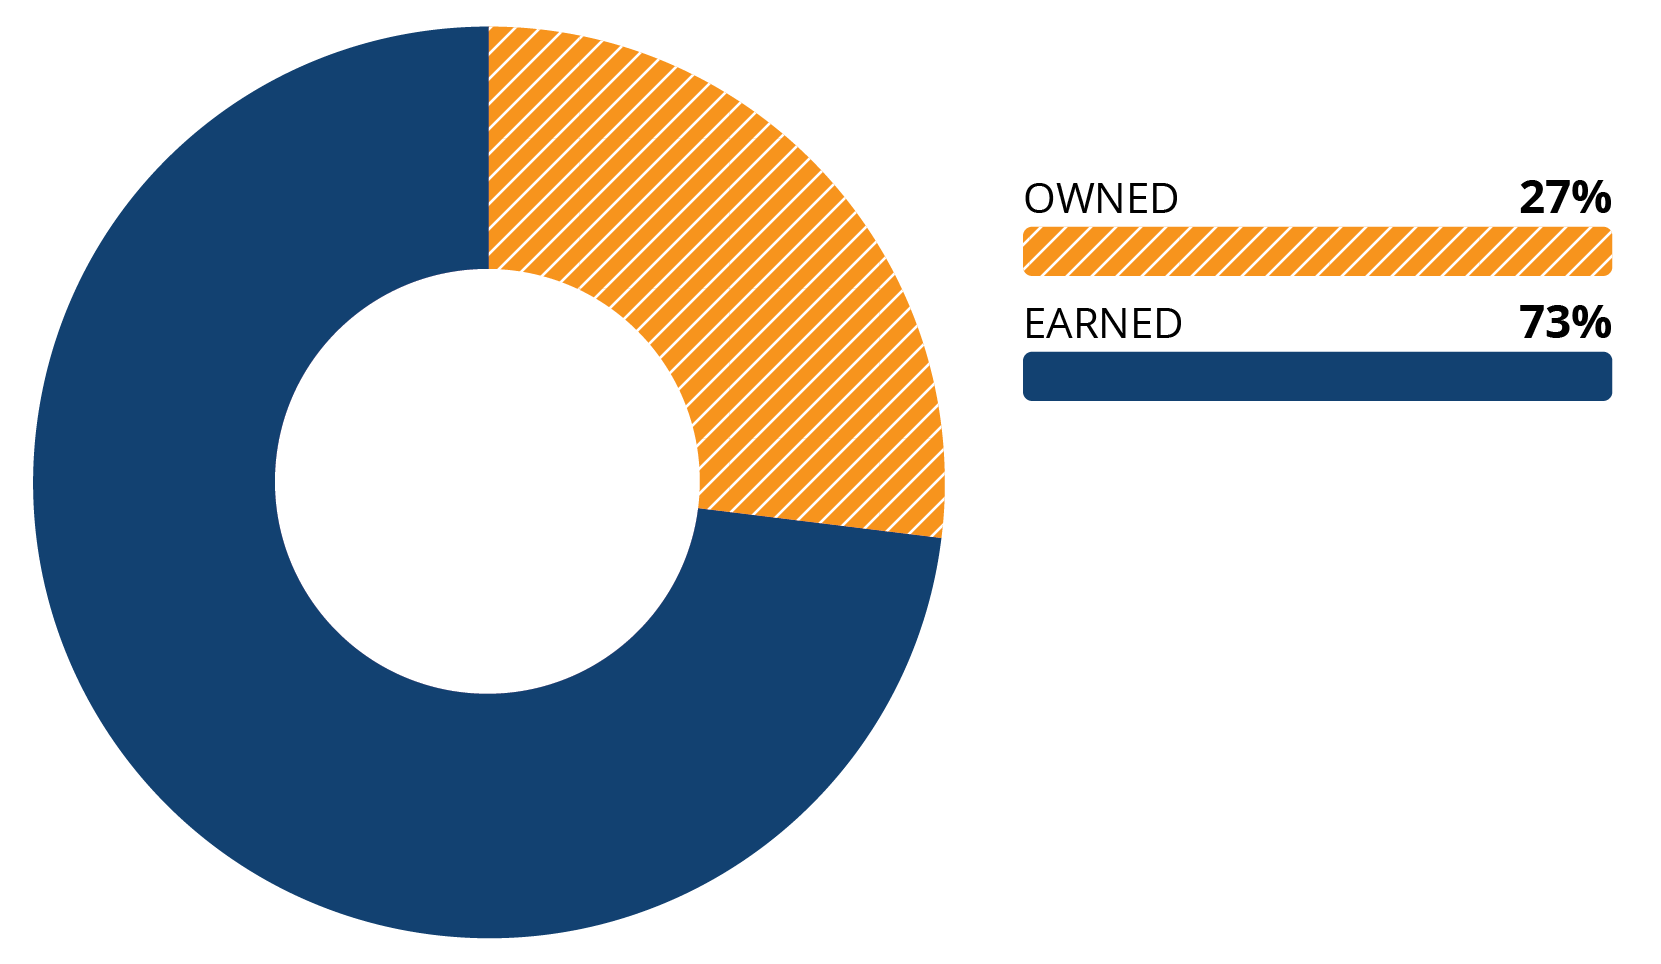 Donut chart showing the typical relationship between owned and earned conversation